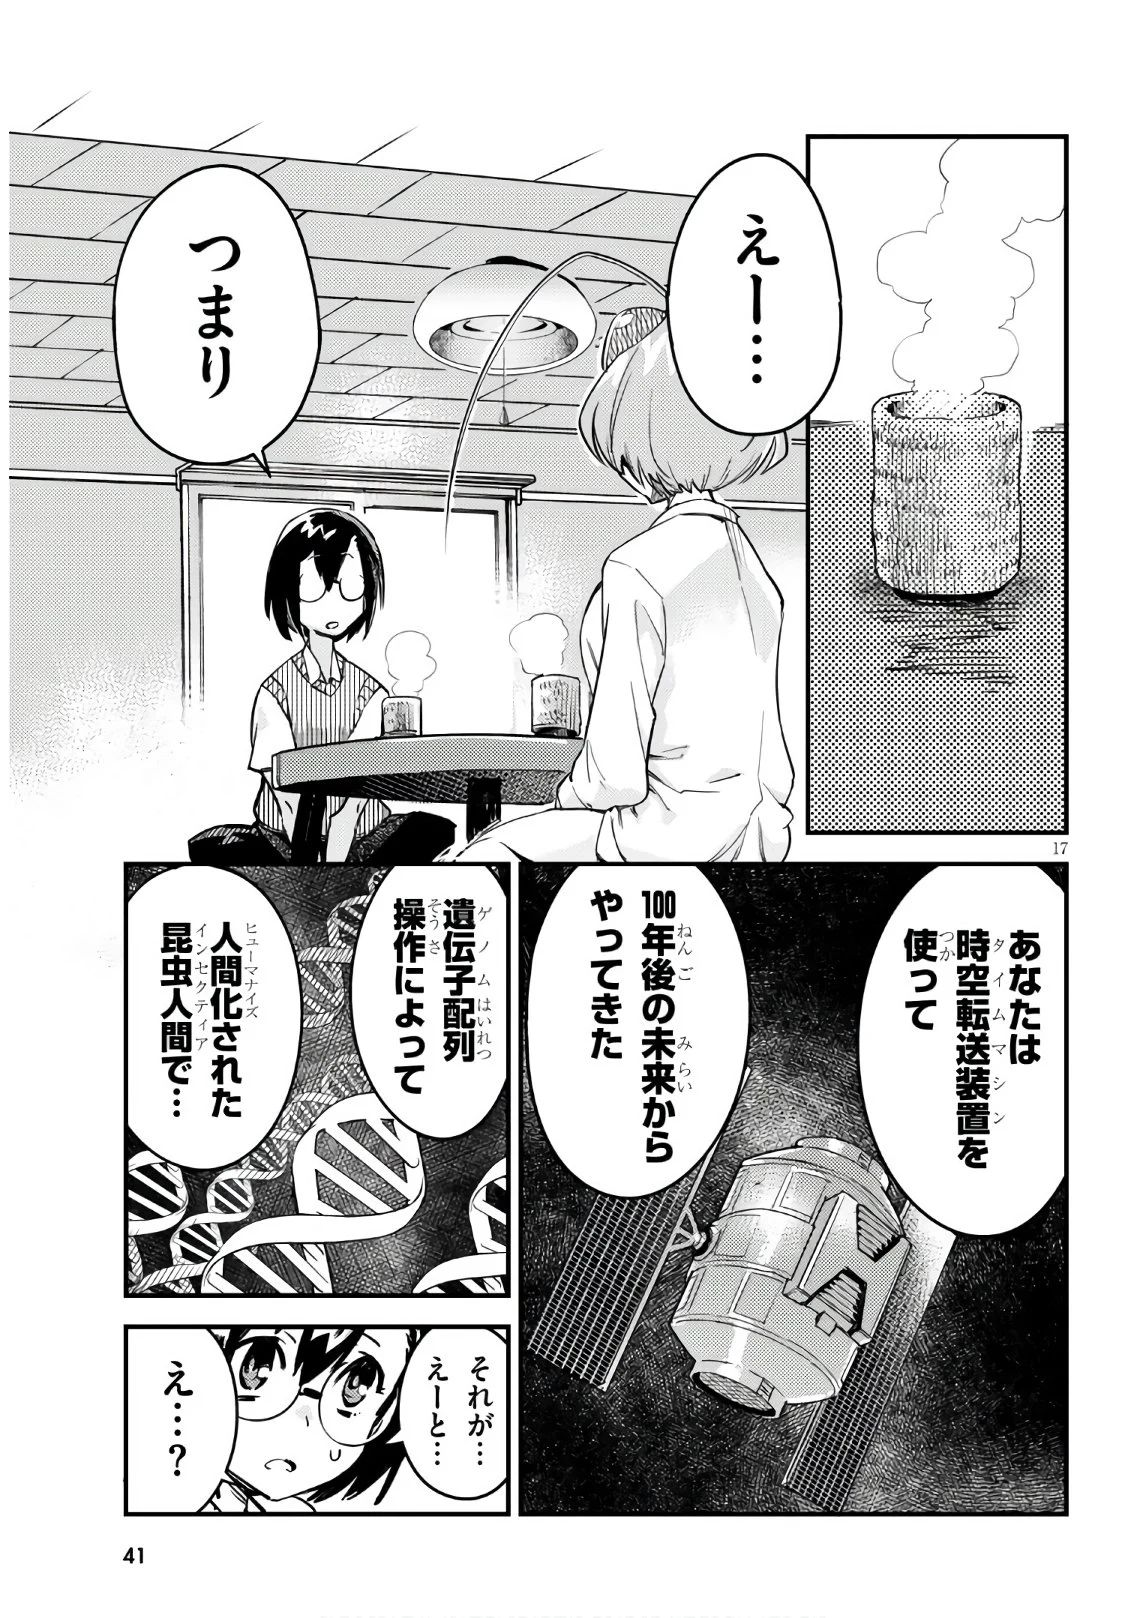 Manga Raw Konchuki Chapter 01